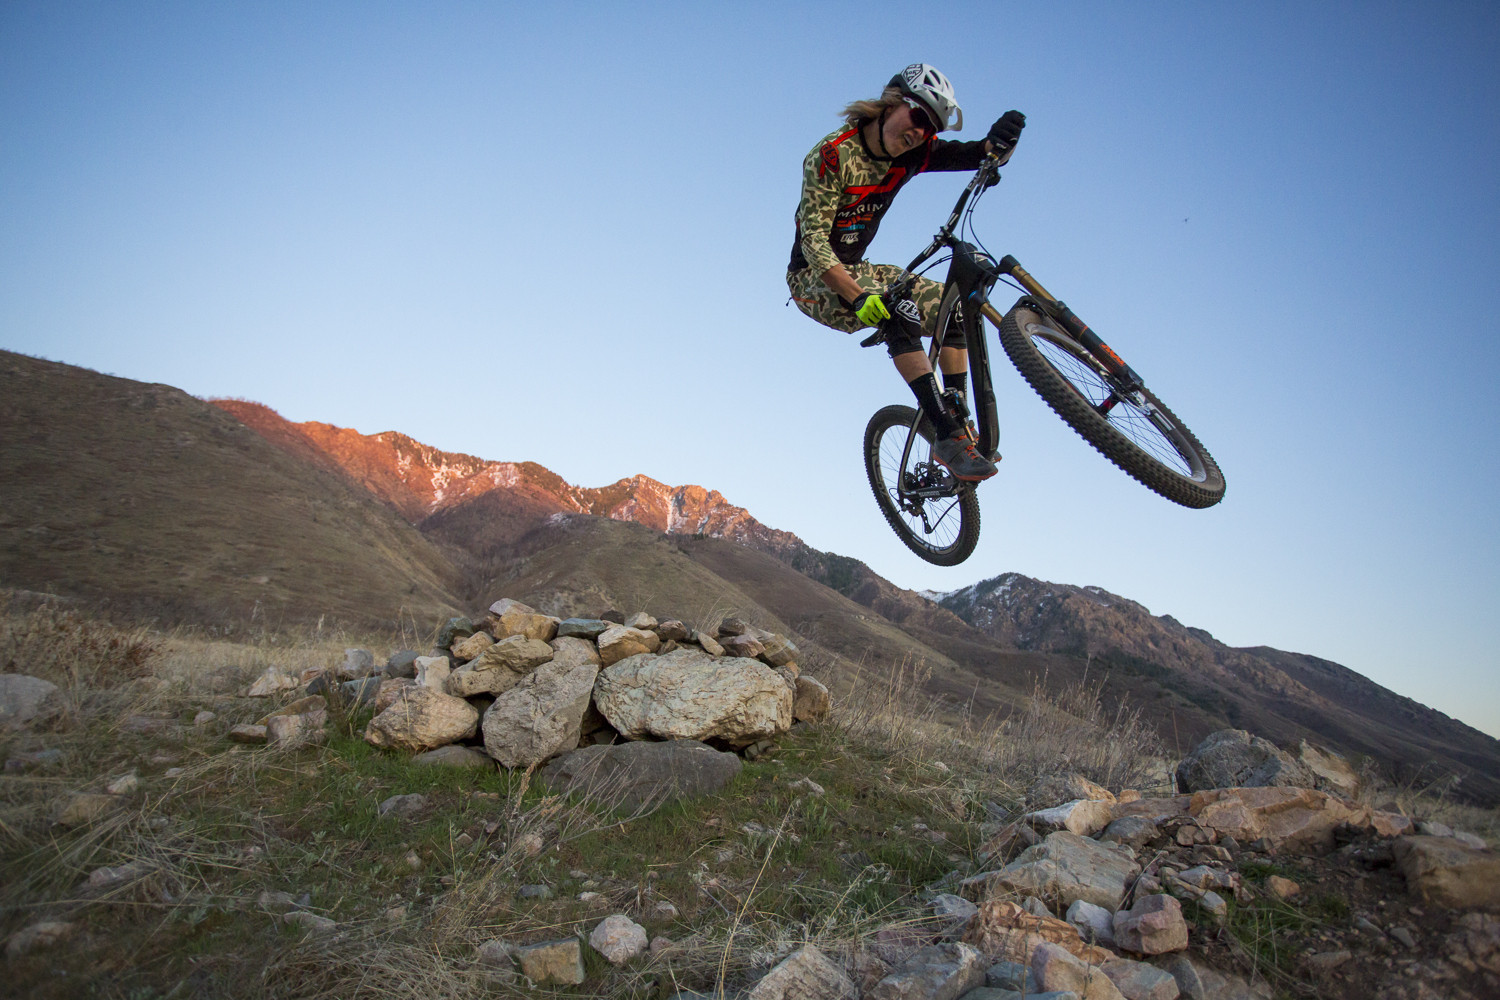 79bfbc0c843 Cody Kelley Blasting his Marin Attack Trail - Pro Bike Check: Cody Kelley's Marin  Attack Trail - Mountain ...